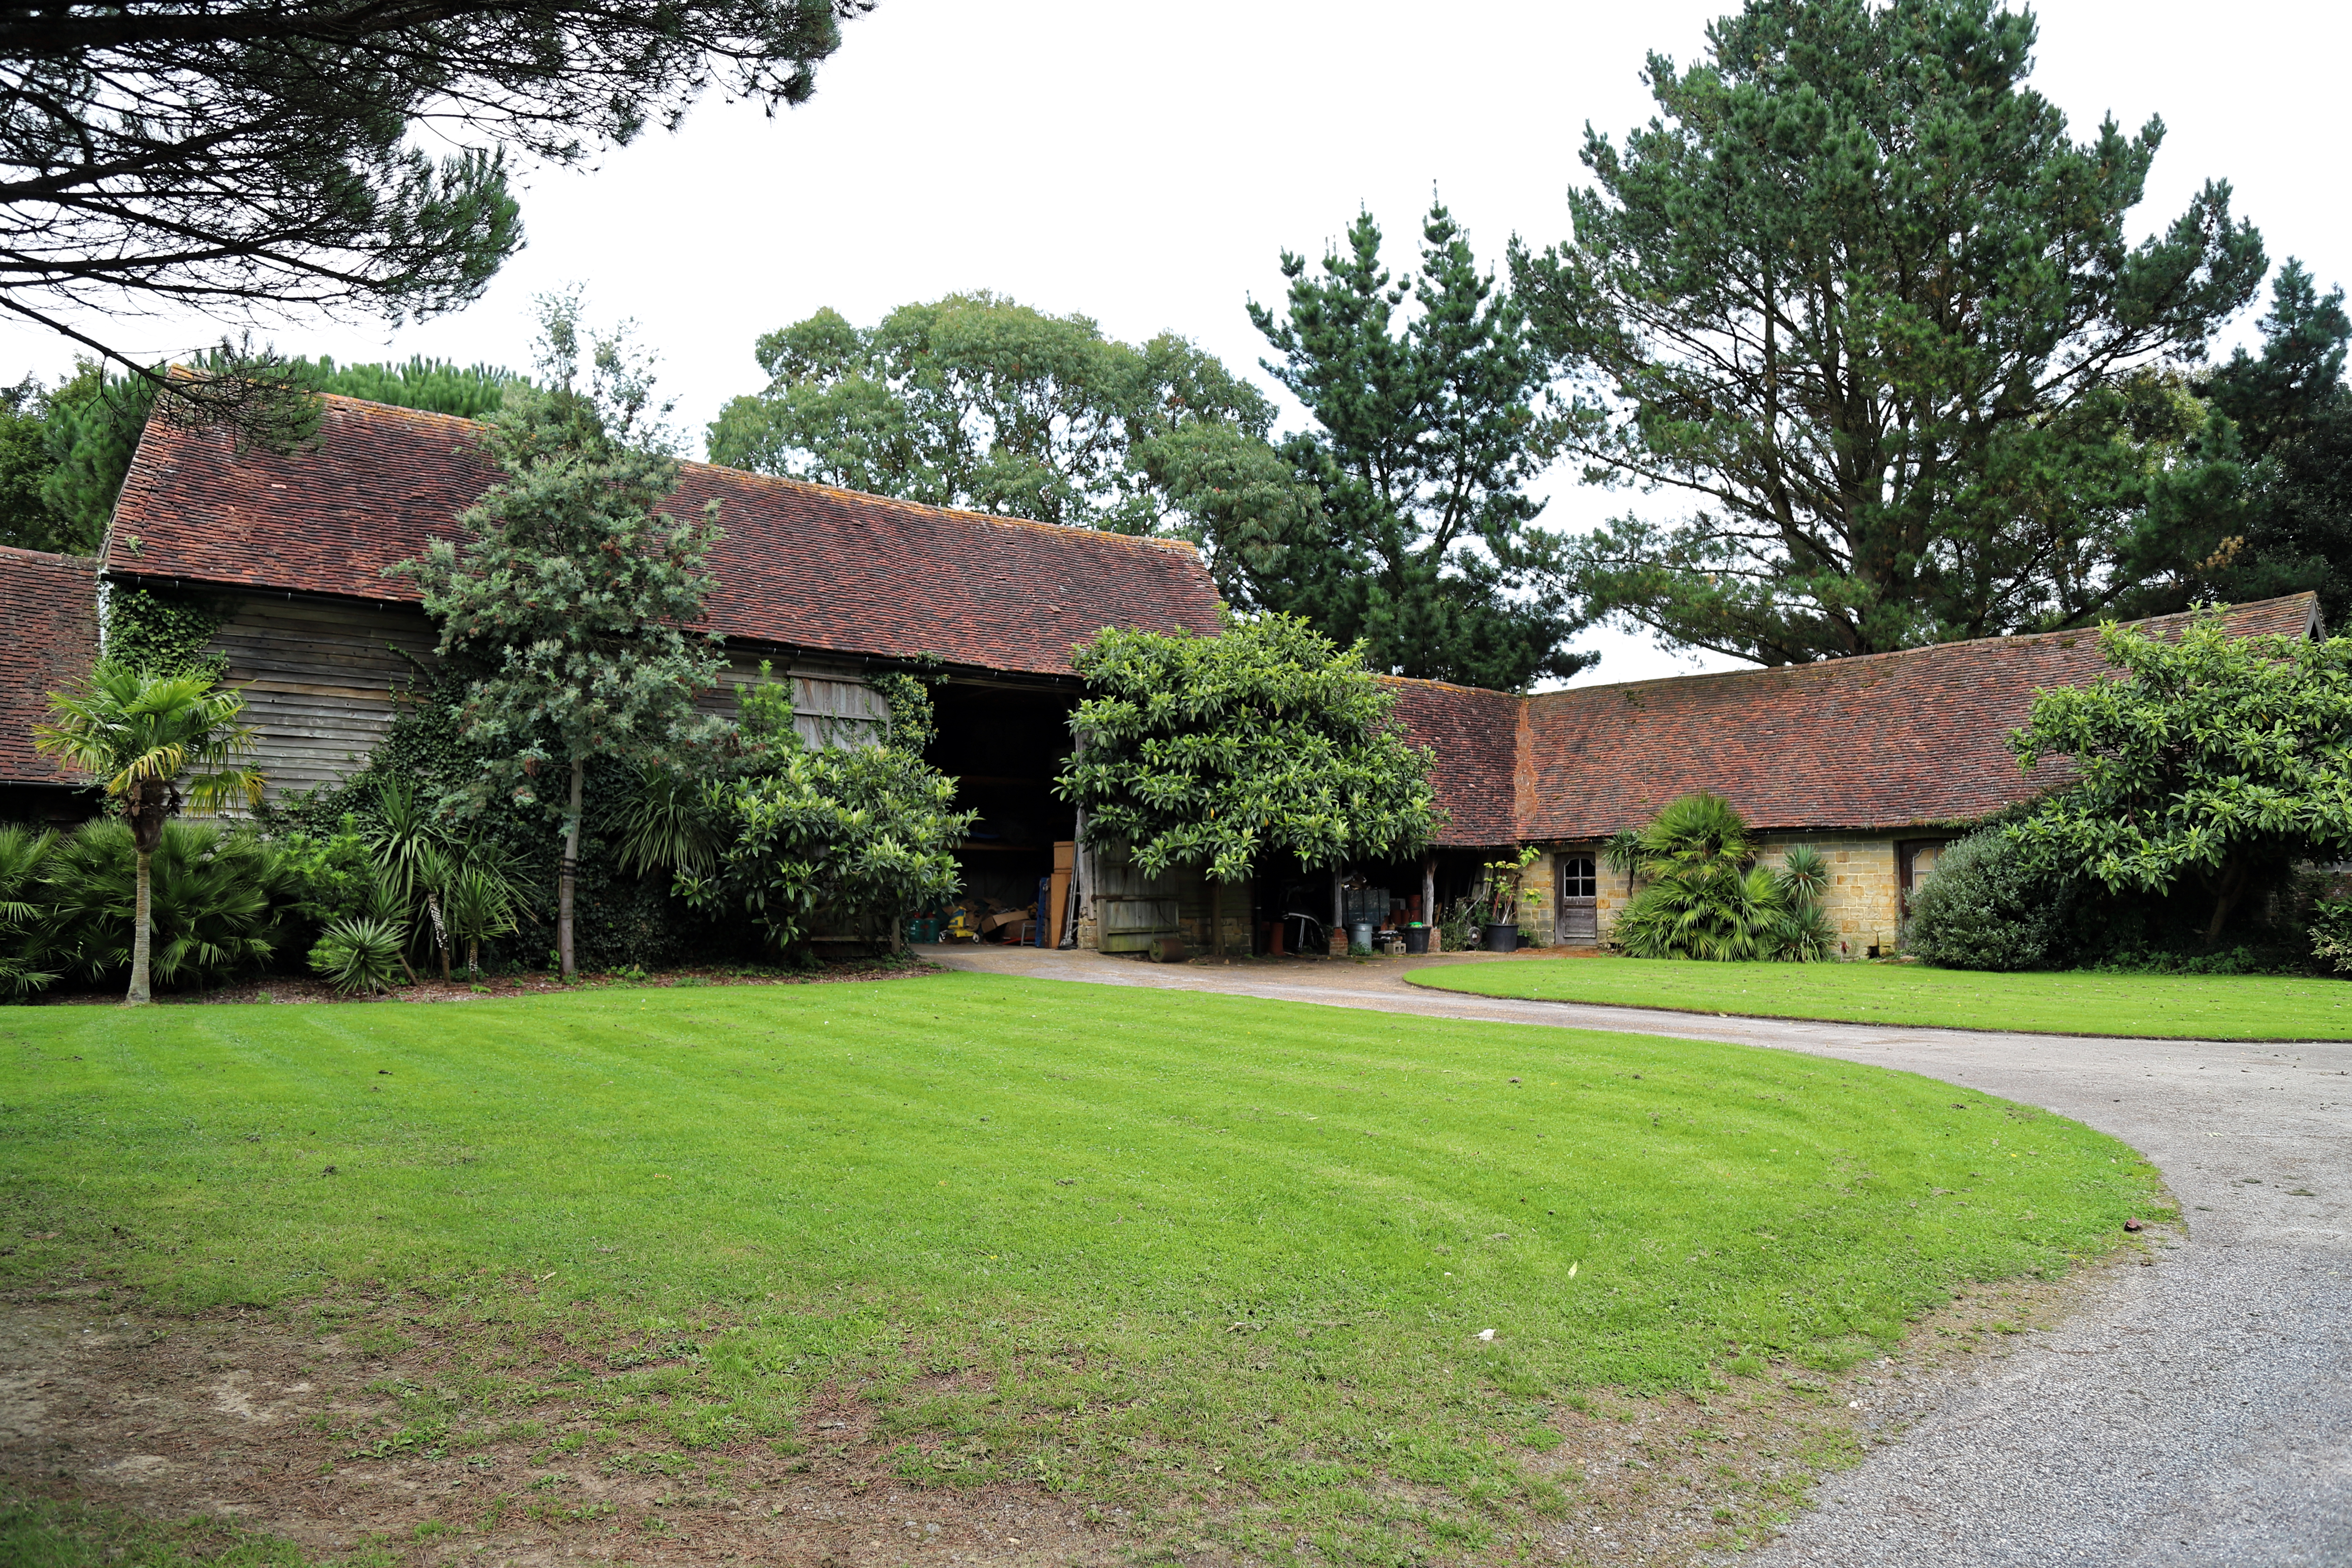 File:Cook's Farm bridleway barn in Nuthurst village, West